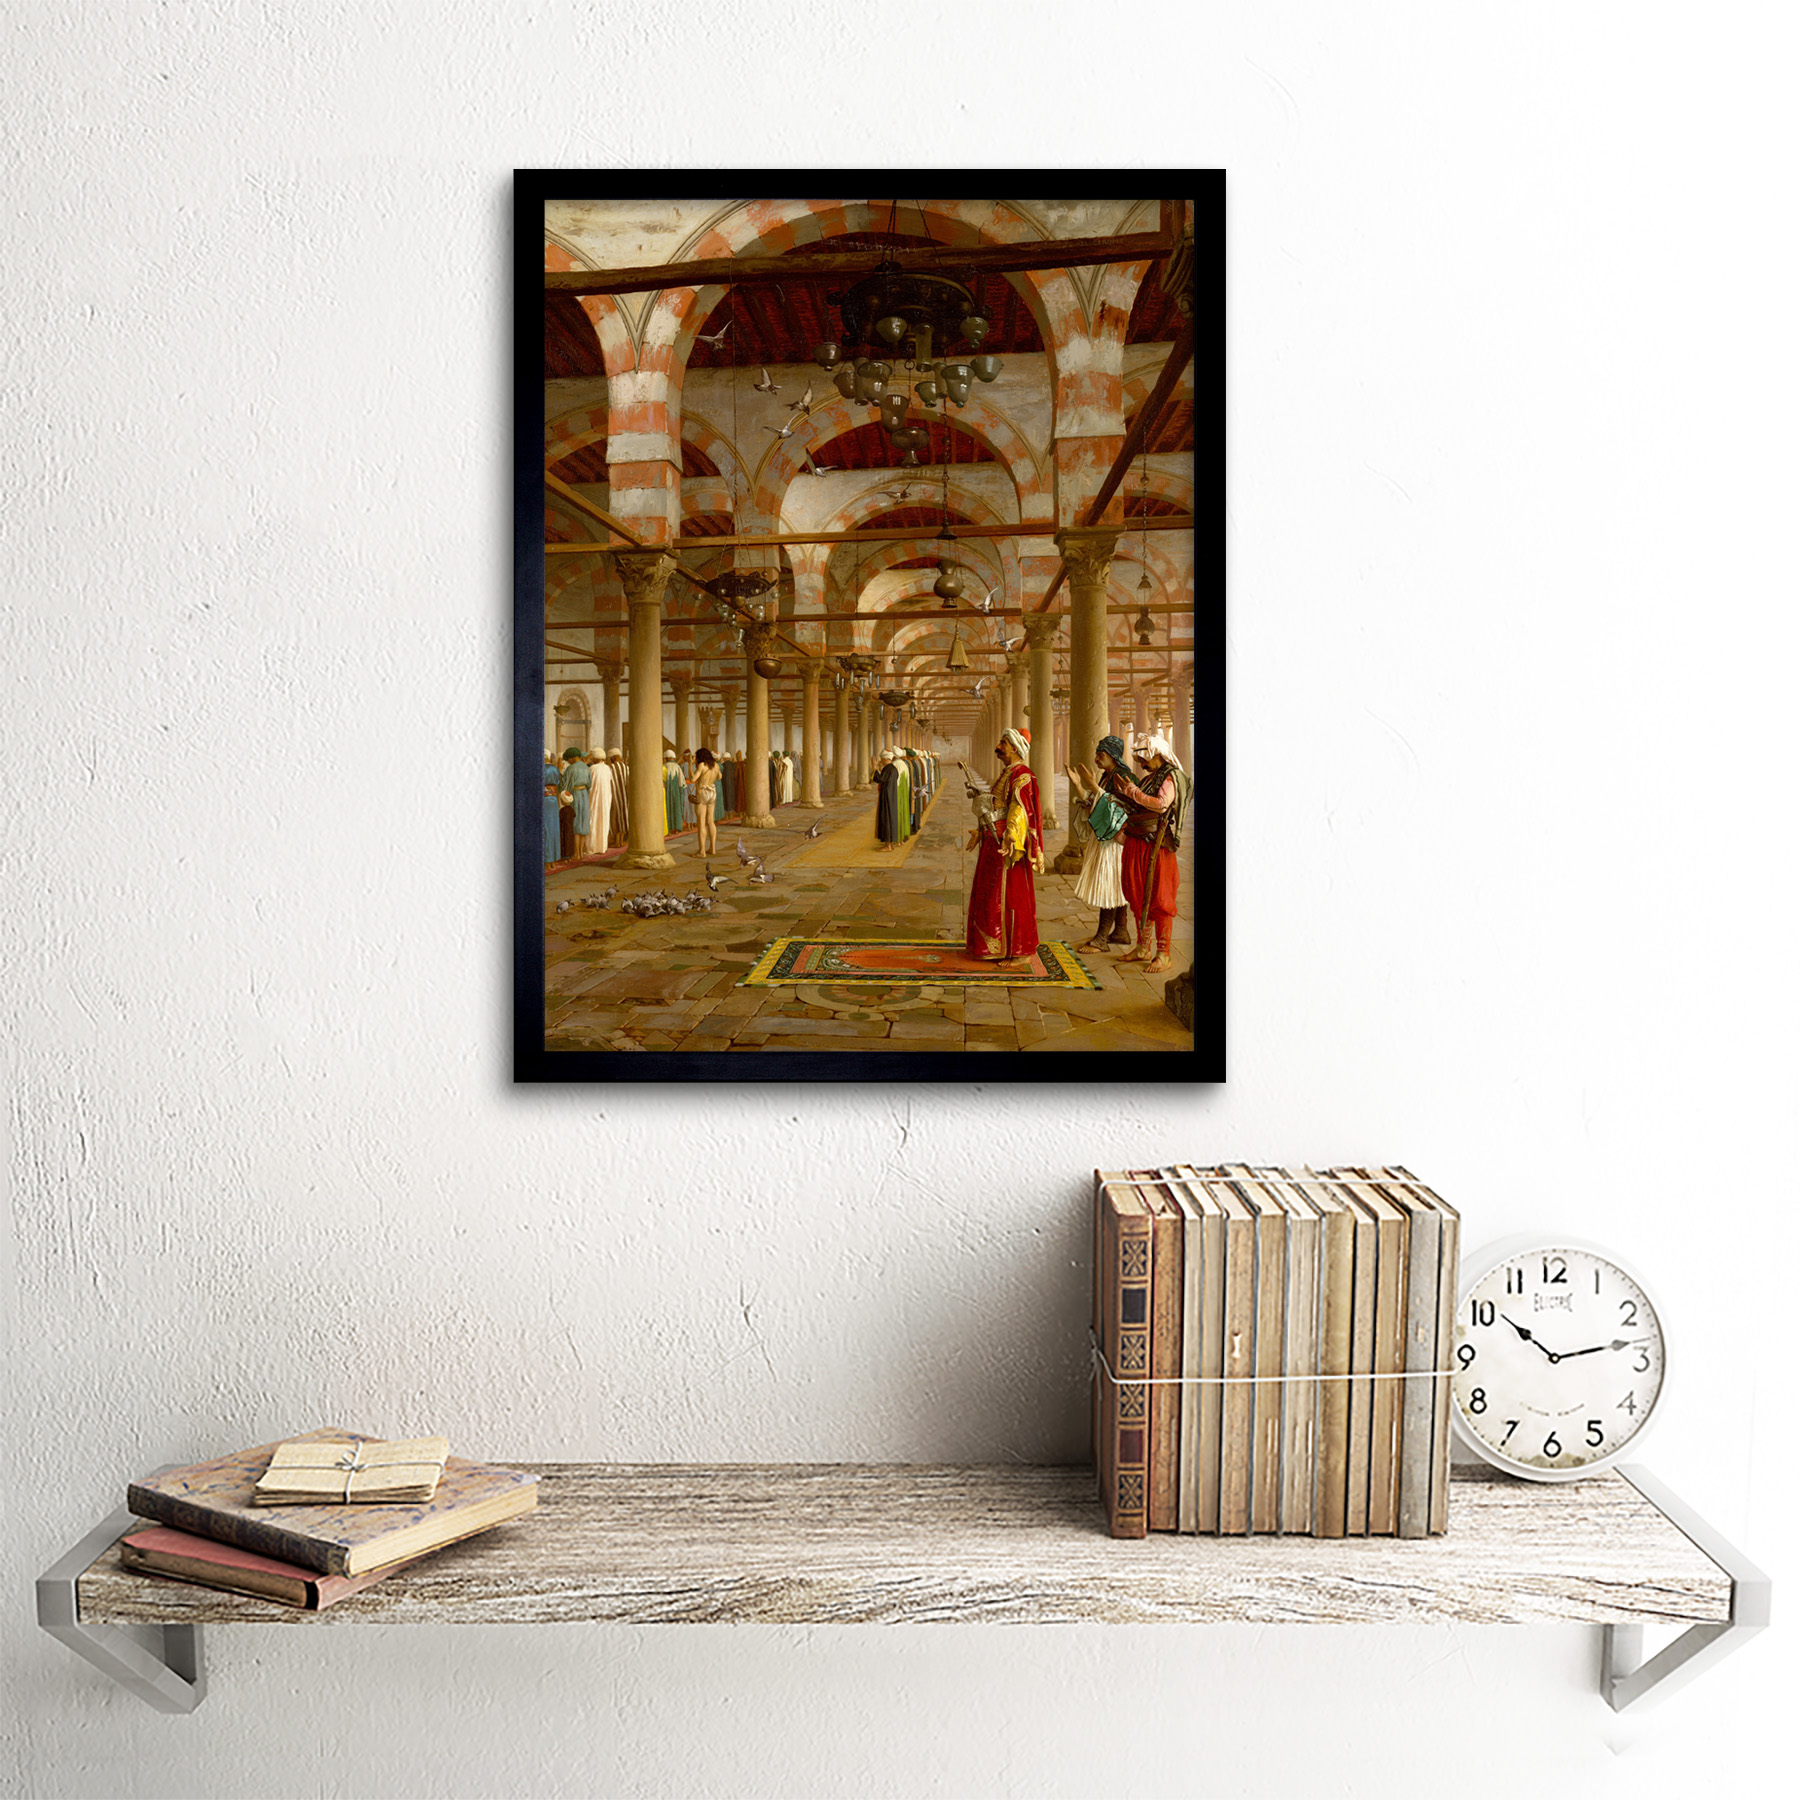 Gerome-Prayer-Mosque-Islamic-Painting-Framed-Wall-Art-Poster thumbnail 3